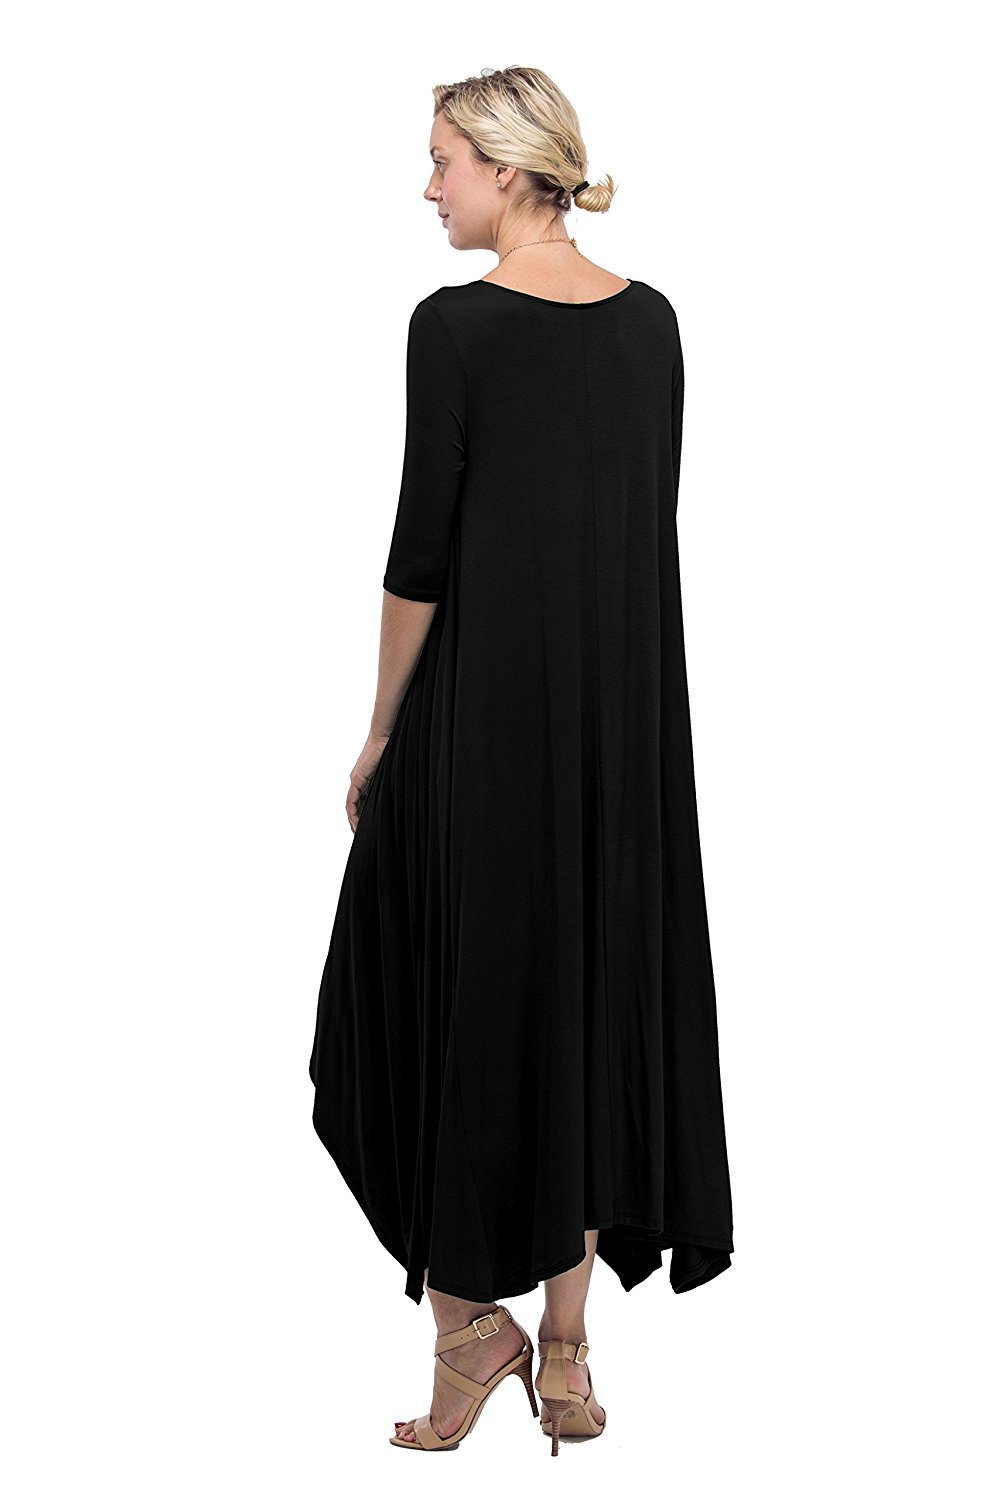 USA Women Solid Round Neck High Low Flared Long Jersey Draped ...